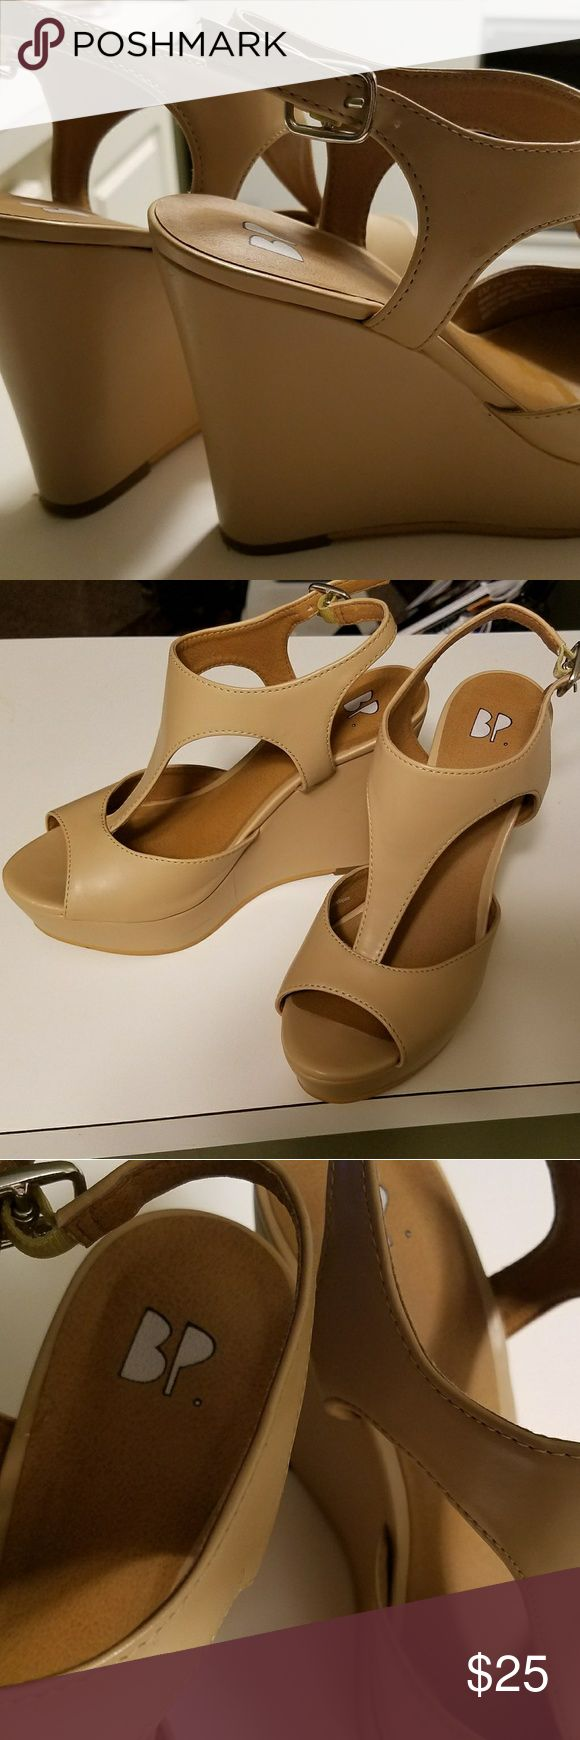 Wedge shoes Tan wedge shoes that are comfortable and stylish BP Shoes Wedges